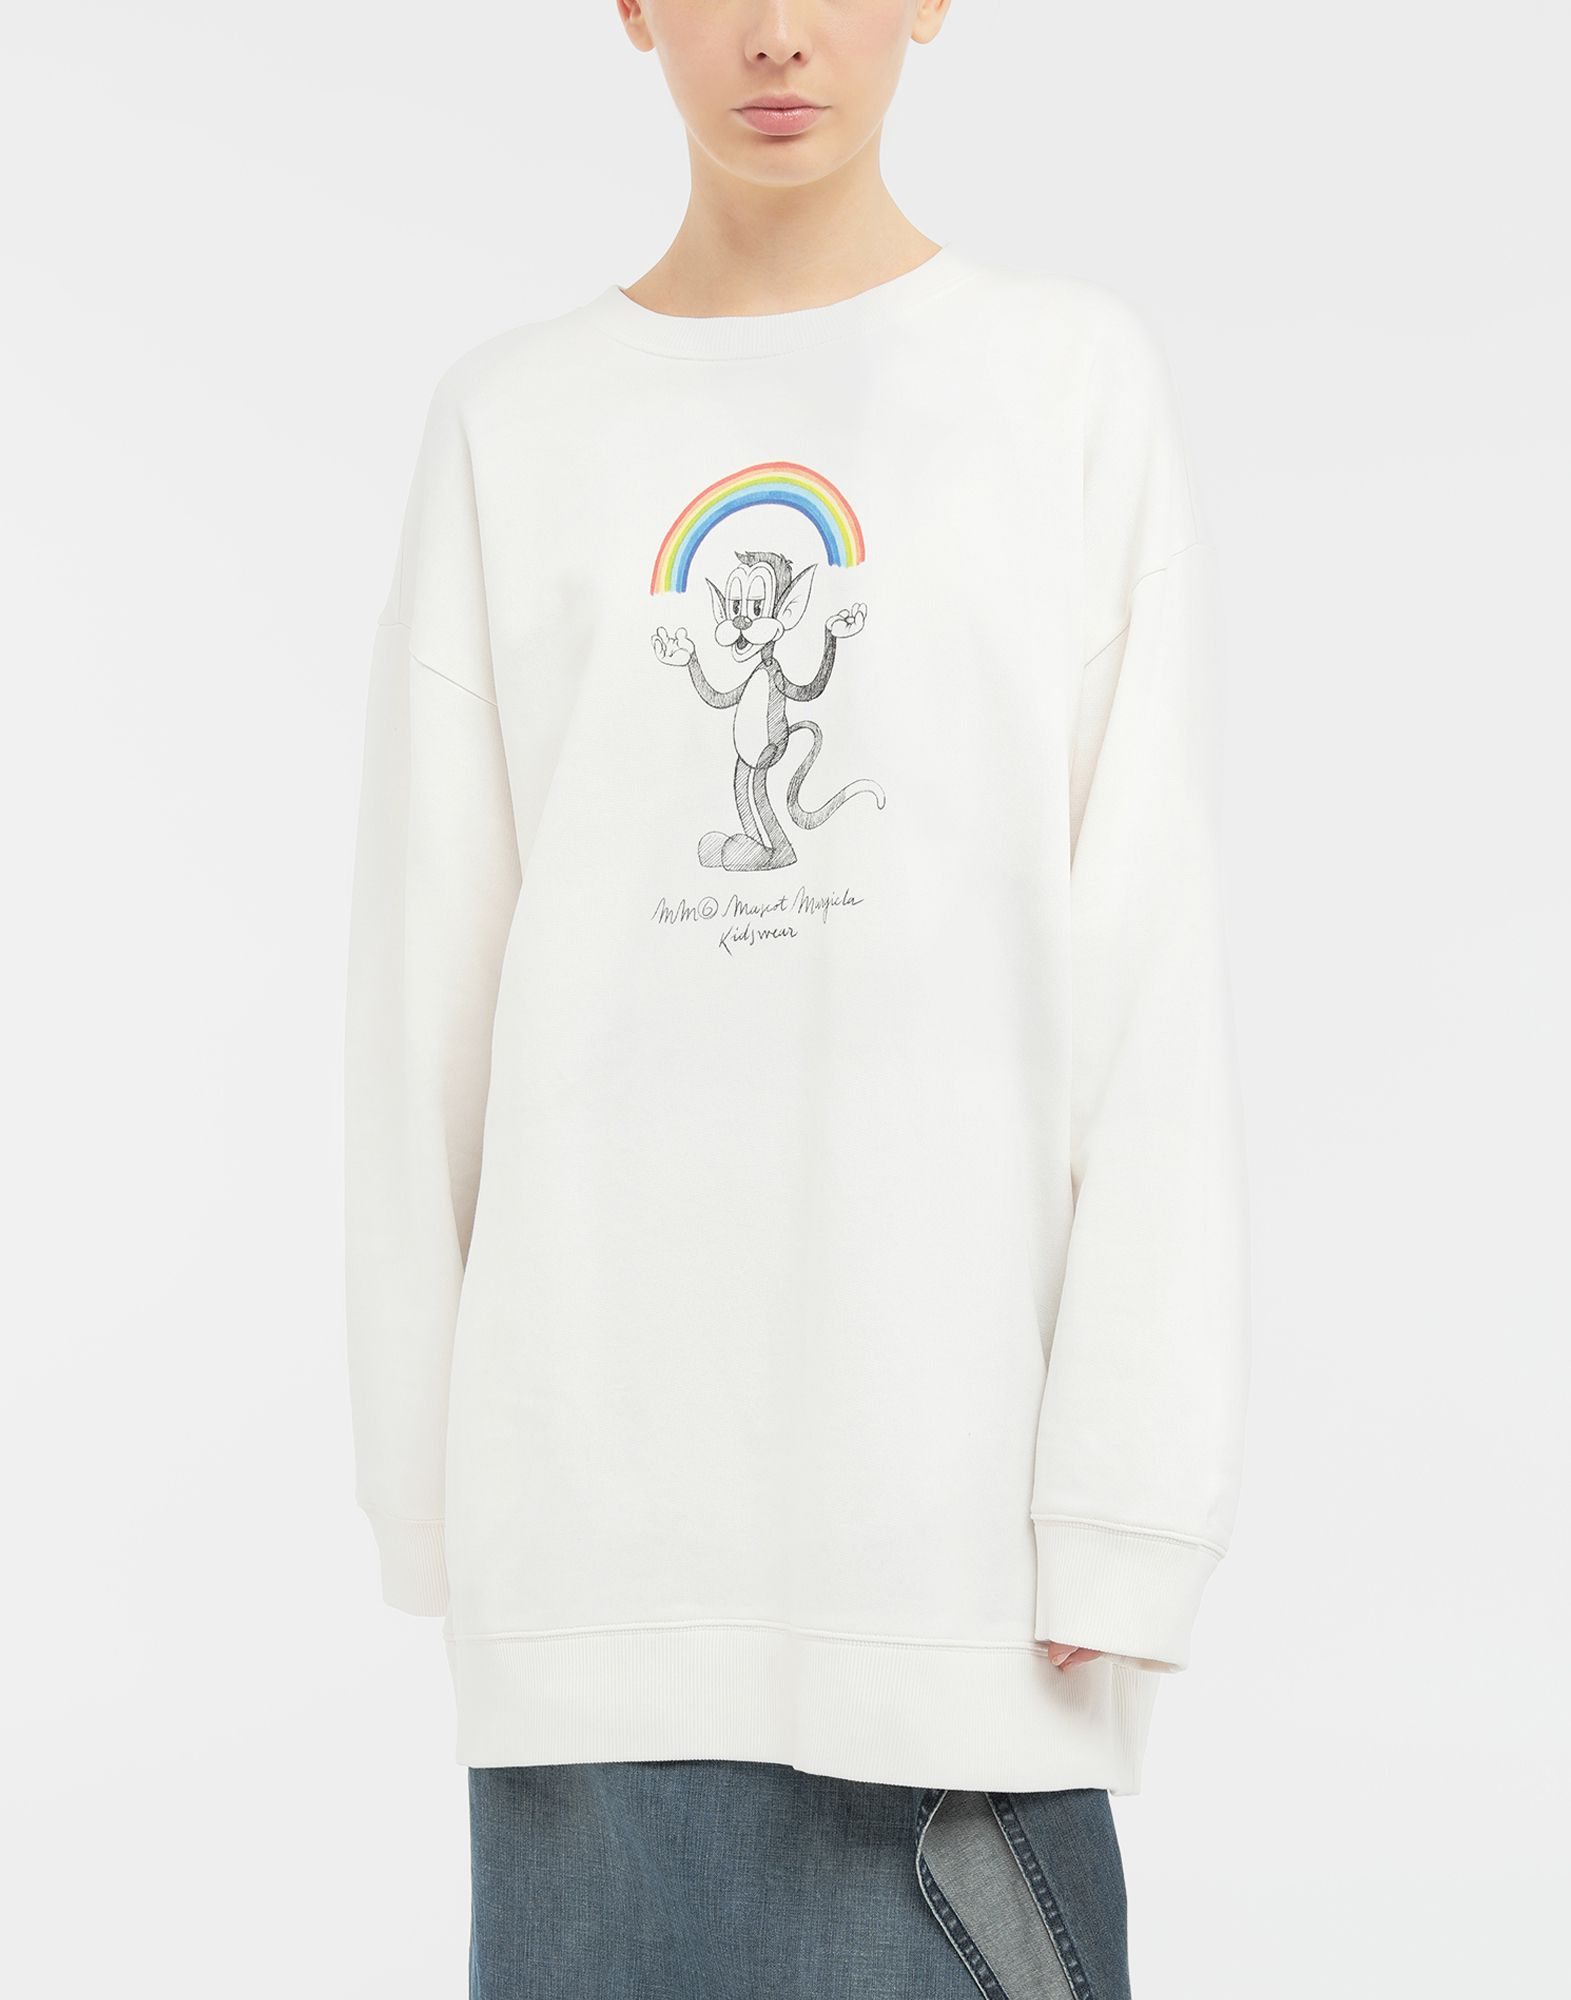 MM6 MAISON MARGIELA Sweat-shirt avec imprimé Rainbowmaker Sweatshirt Femme r